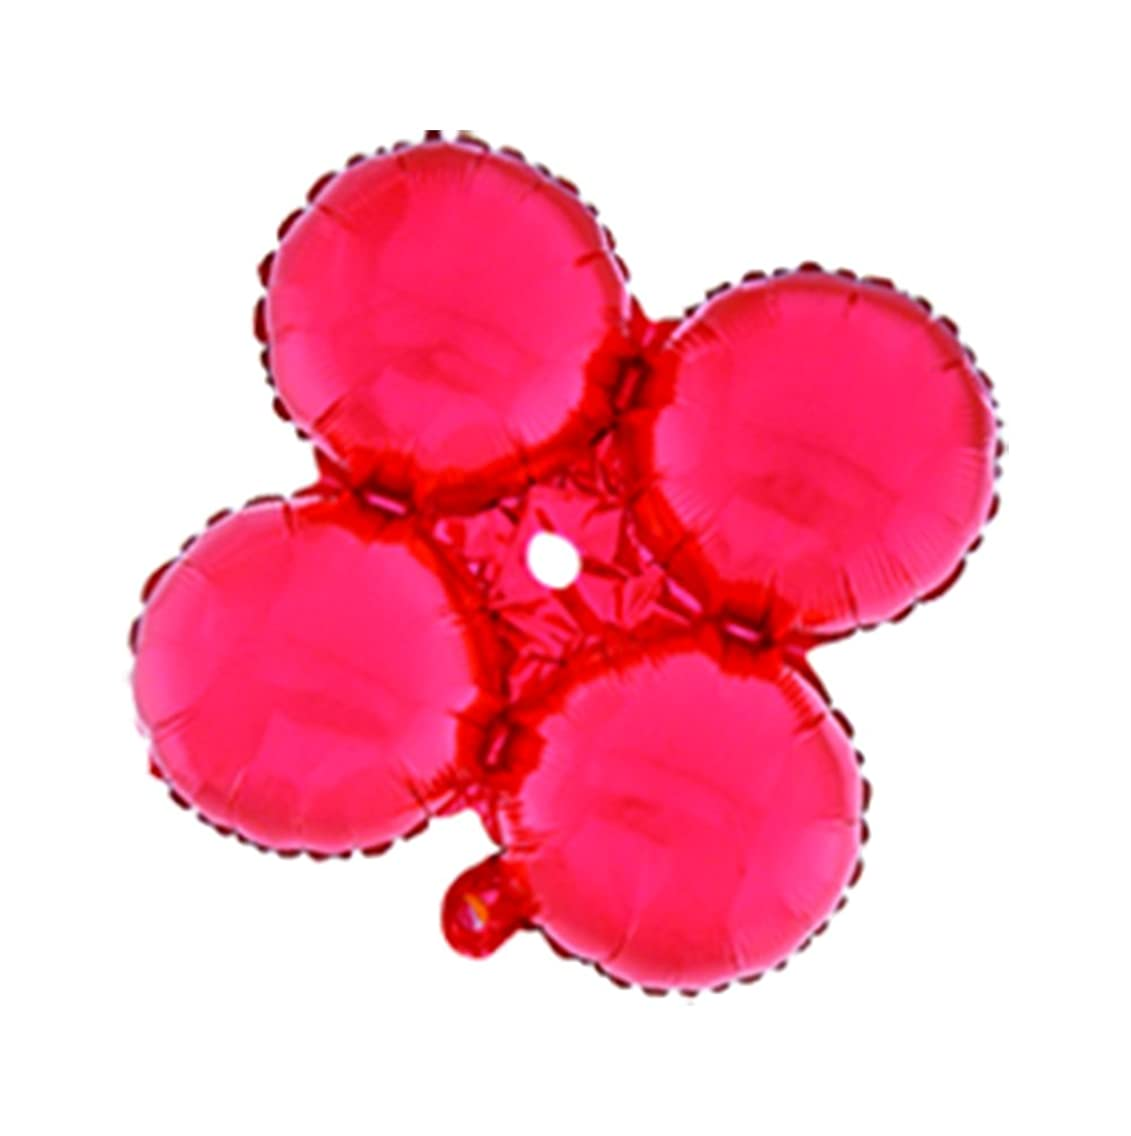 Mcolour Balloon 18 Inch Balloon Arch Kit (red).10 balloons inside